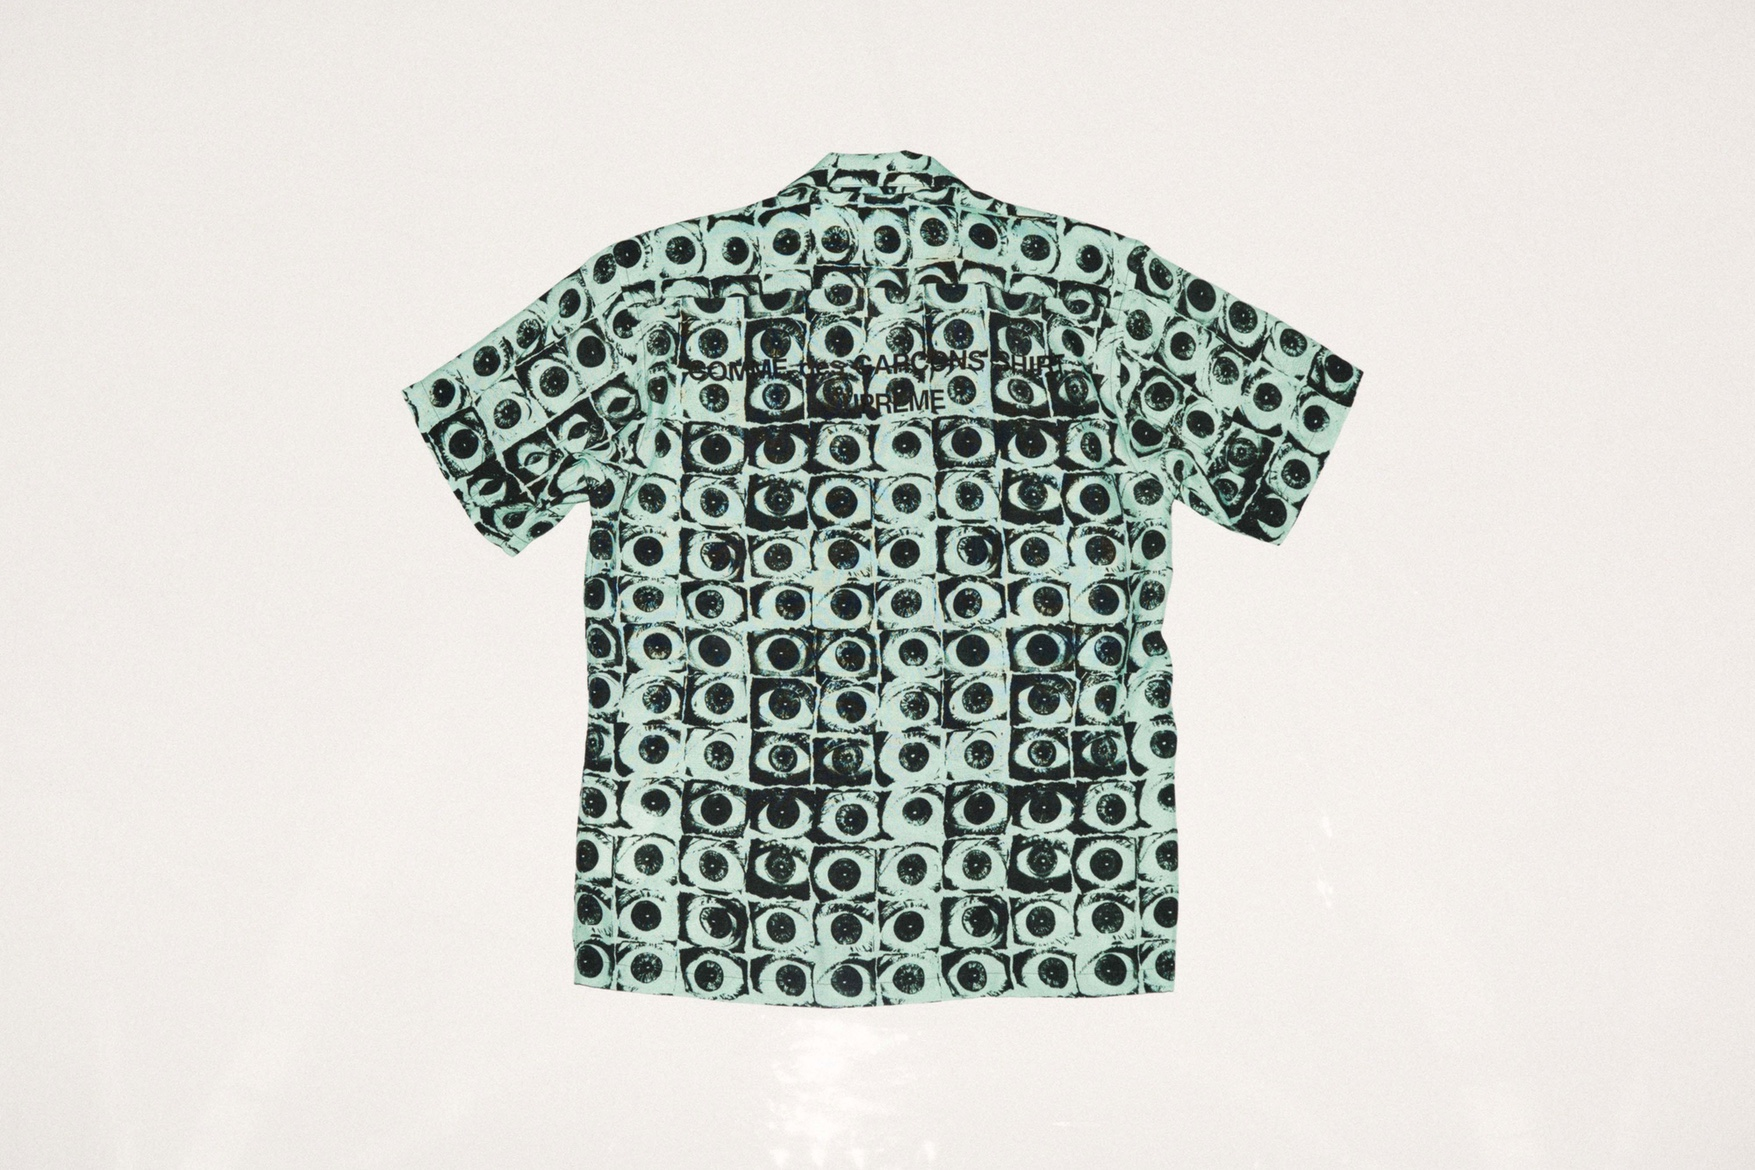 http---hypebeast.com-image-2017-04-supreme-comme-des-garcons-shirt-2017-spring-summer-collection-green-rayon-shirt-back-16.jpg